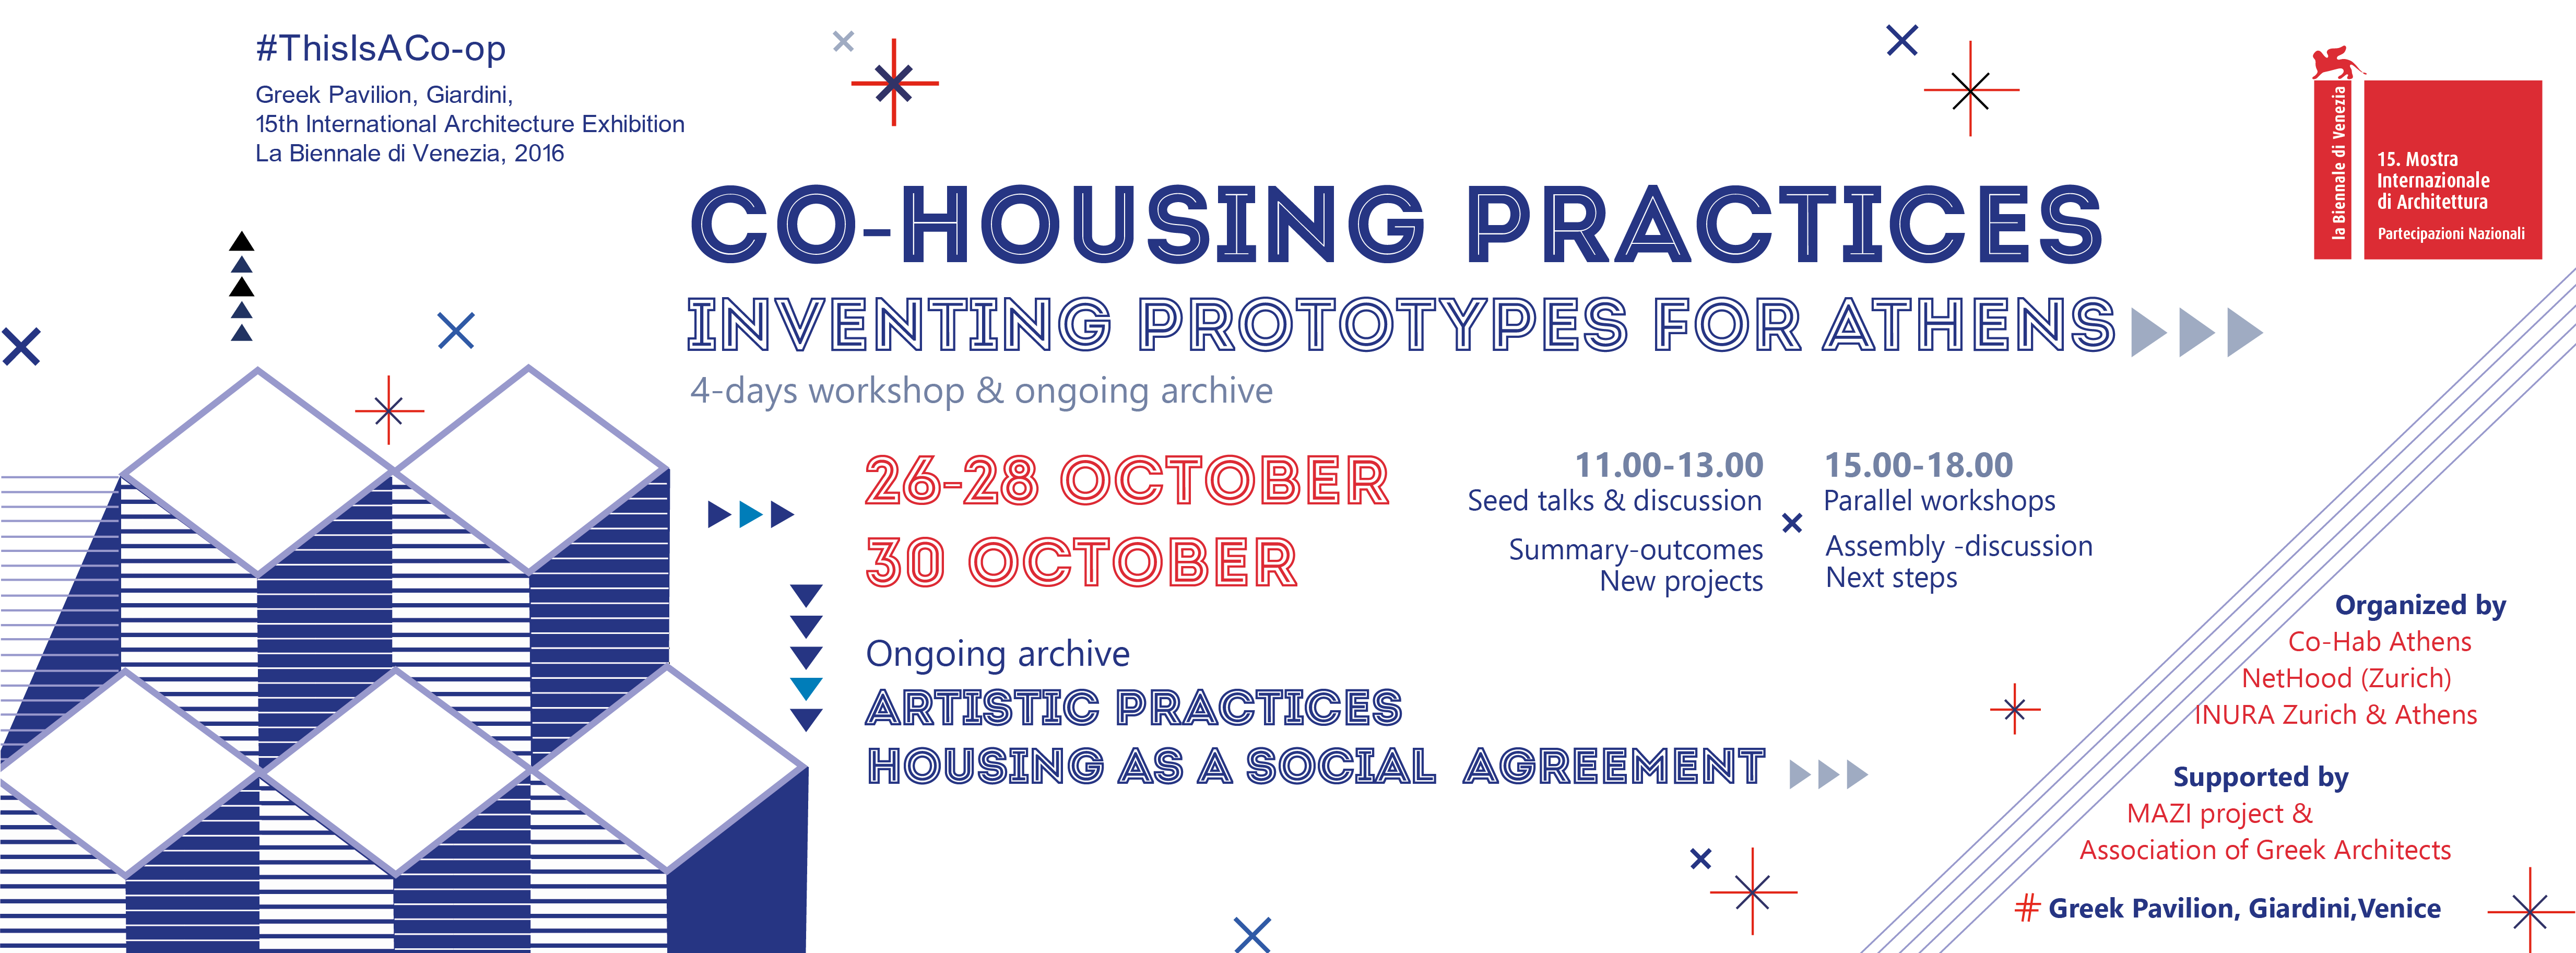 """Co-housing Practices/Inventing prototypes for Athens"" 